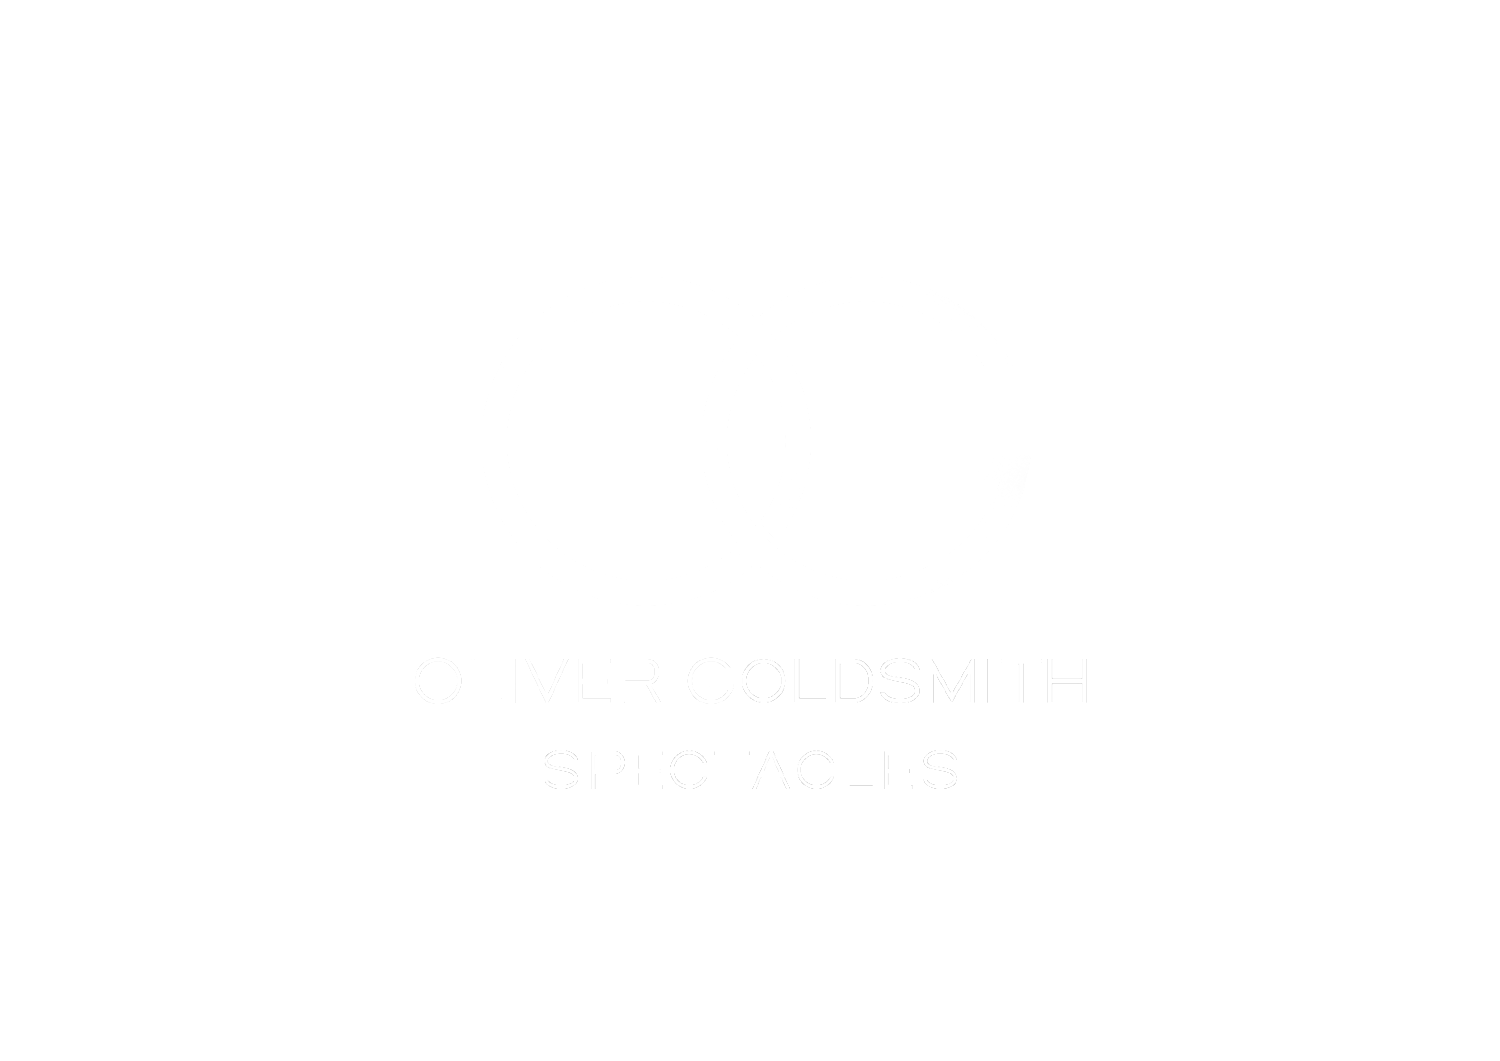 OLIVER GOLDSMITH SPECTACLES